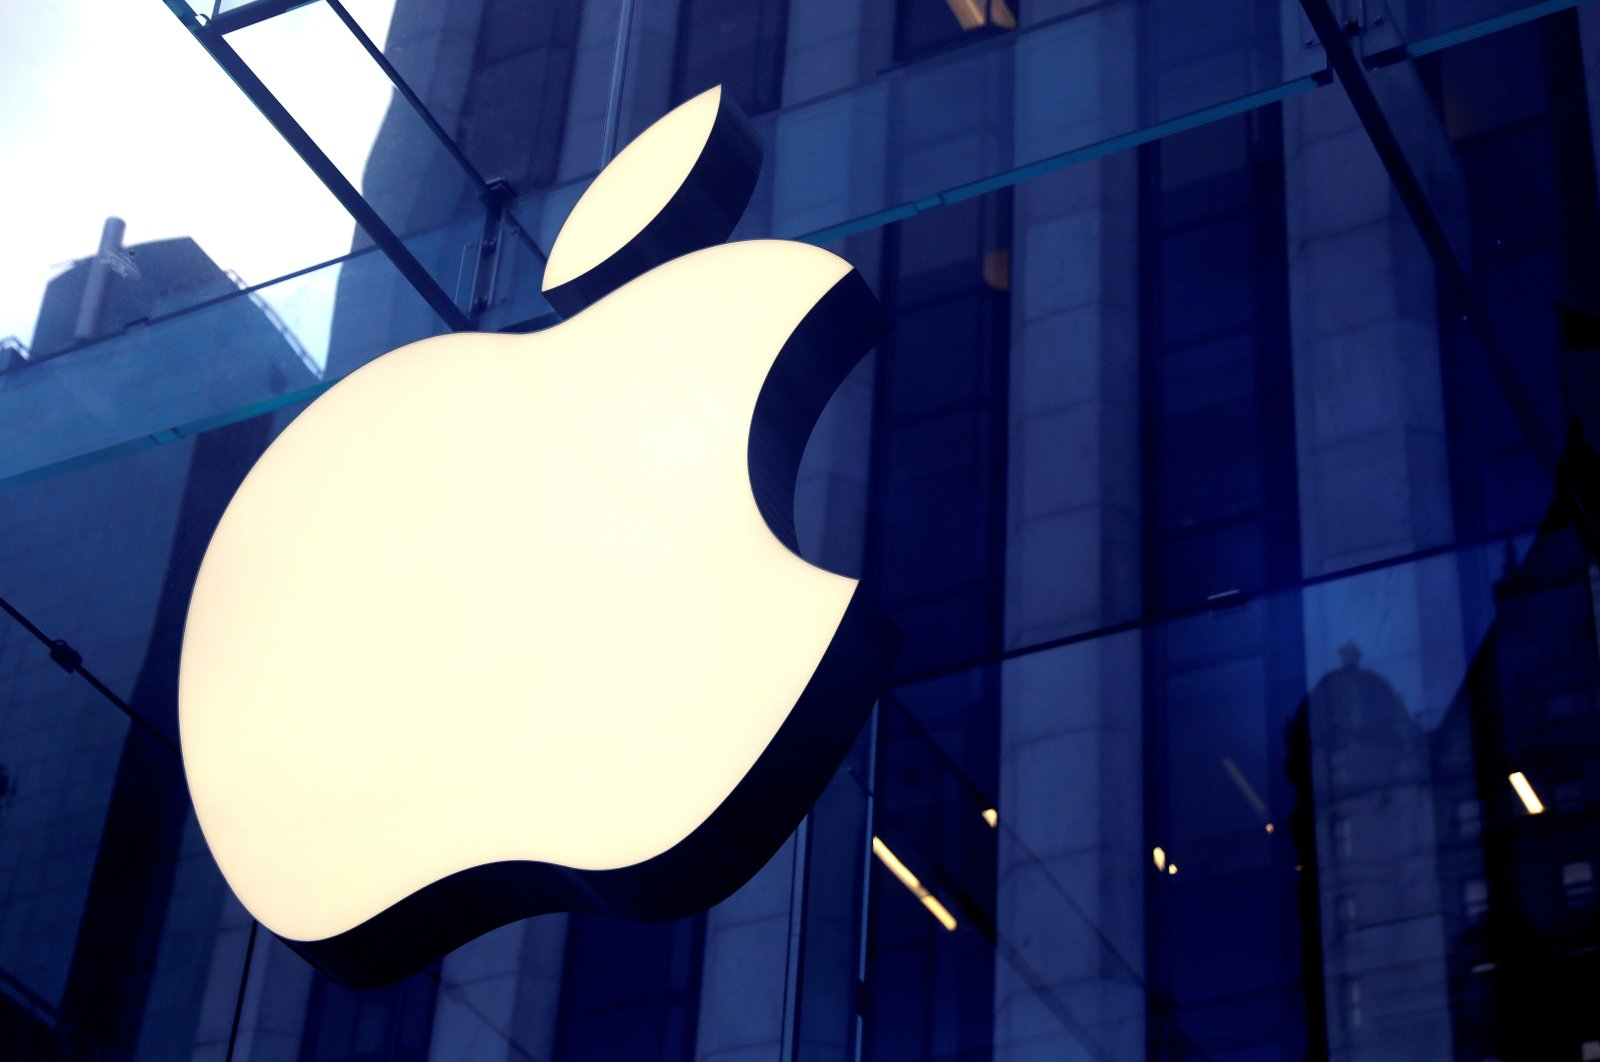 The Apple Inc. logo is seen hanging at the entrance to the Apple store on Fifth Avenue in Manhattan, New York, U.S., Oct. 16, 2019. (Reuters Photo)